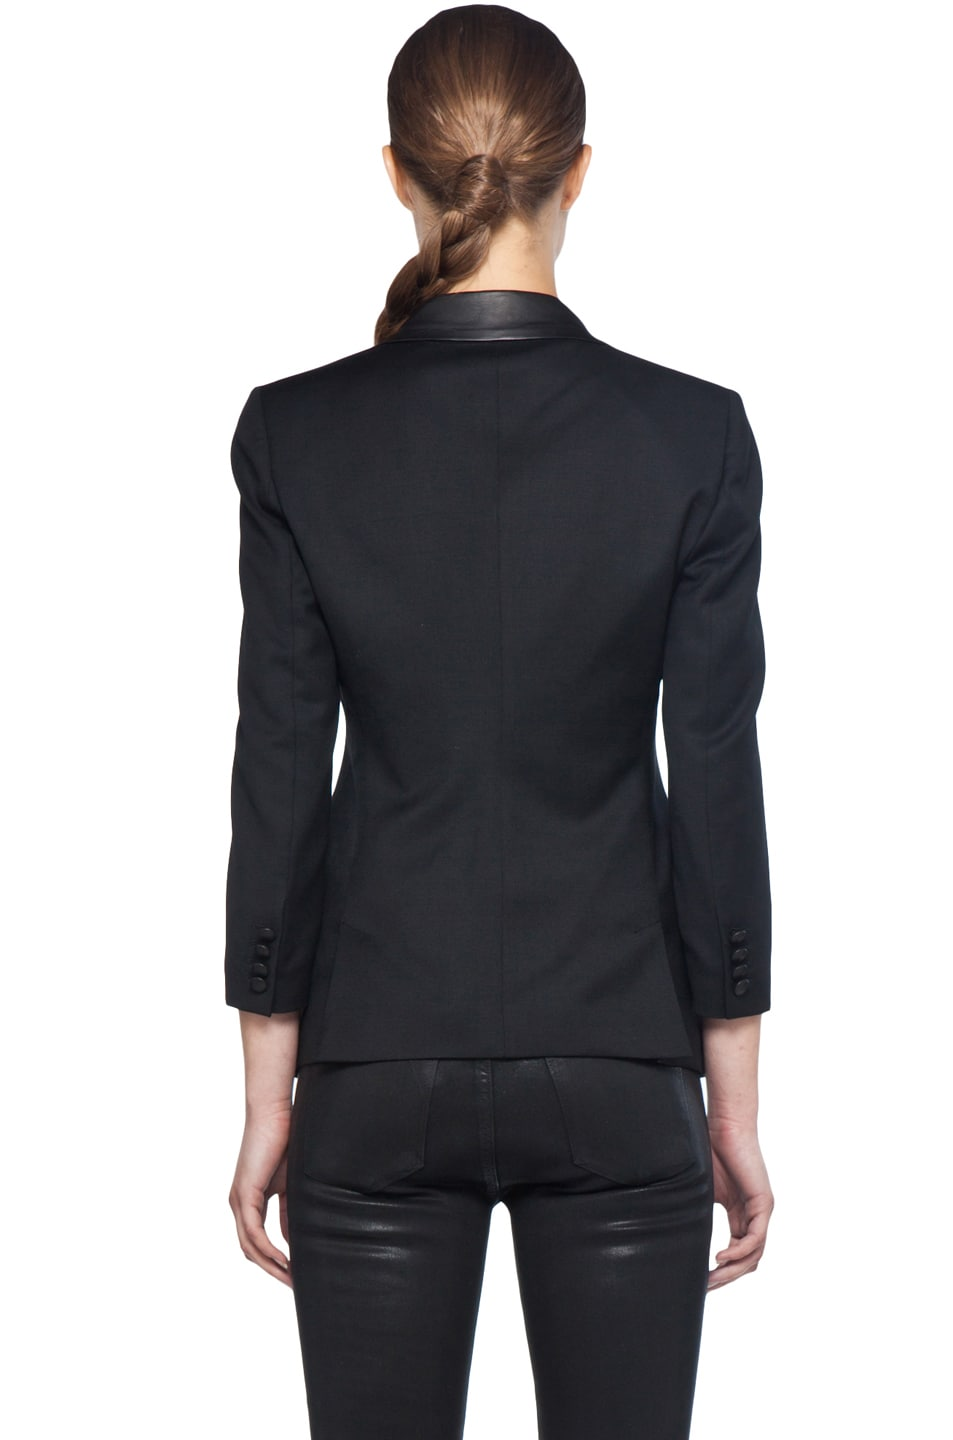 Image 5 of Boy Rope Shoulder Jacket with Leather Lapels in Black